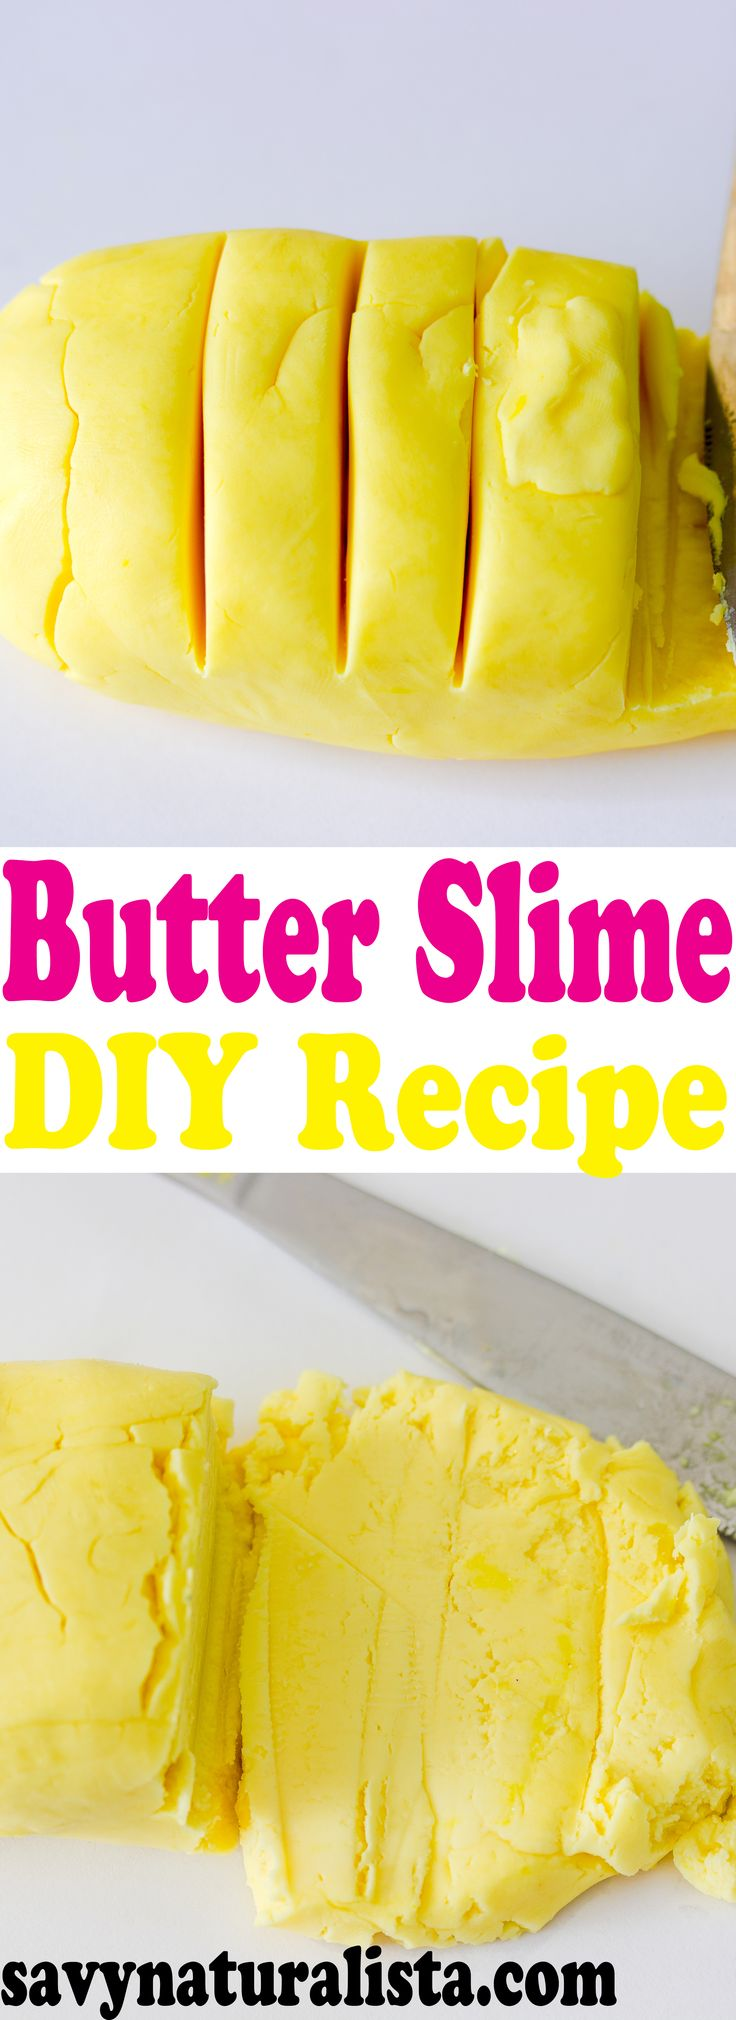 Butter slime is not only fun to play with,but there is no glue required in making this easy three ingredient butter slime recipe.